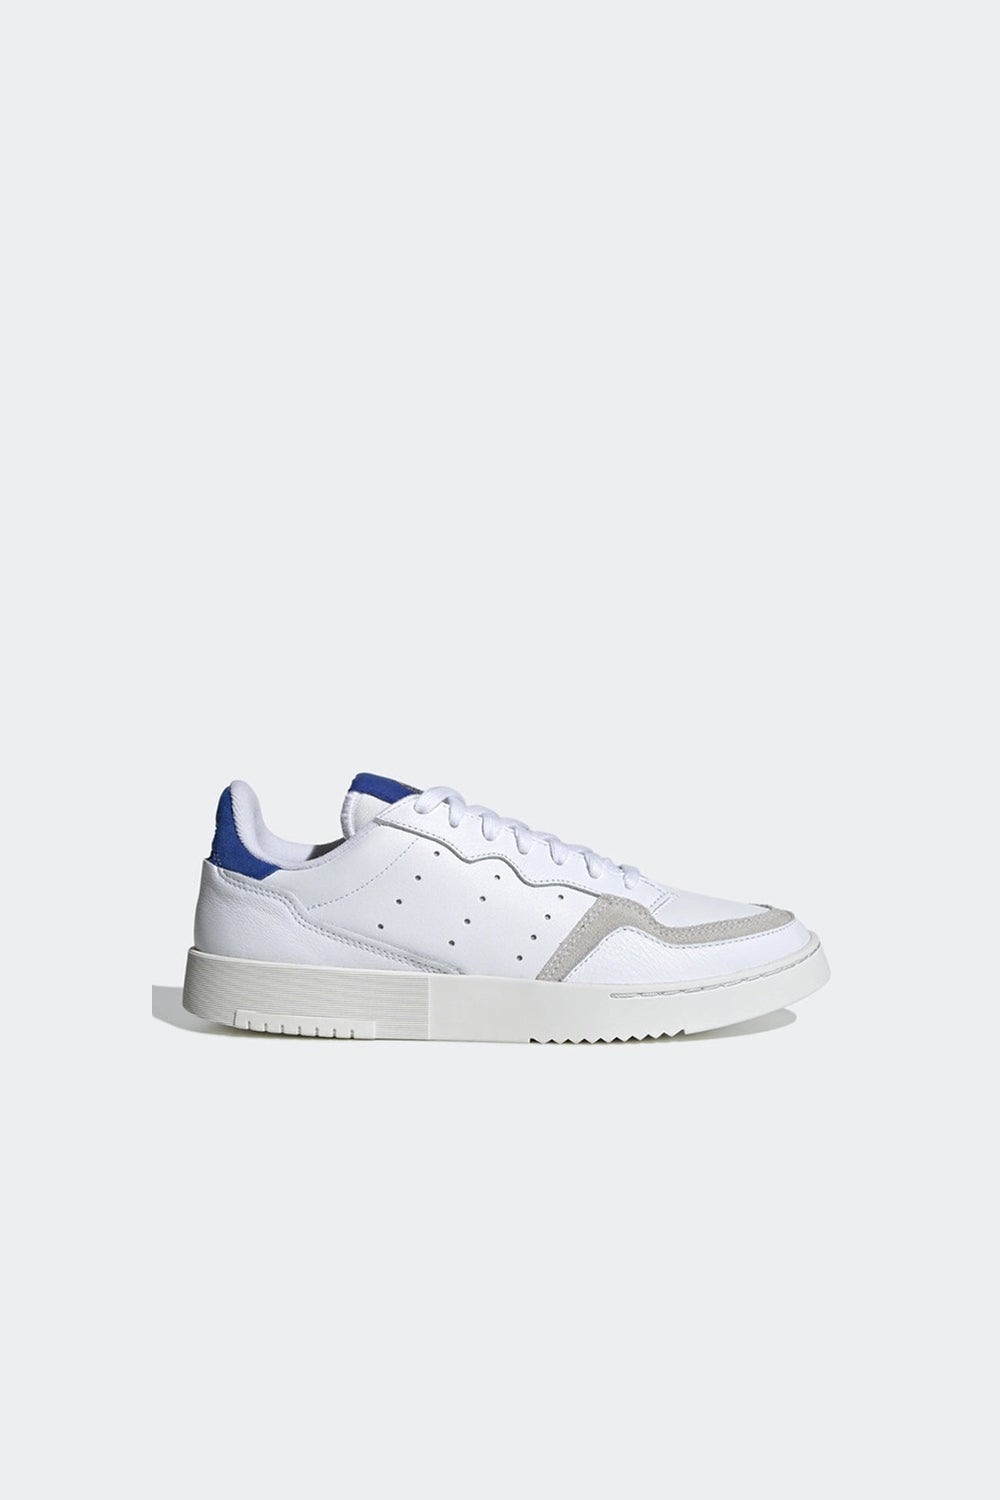 adidas Supercourt FTWR White/Team Royal Blue